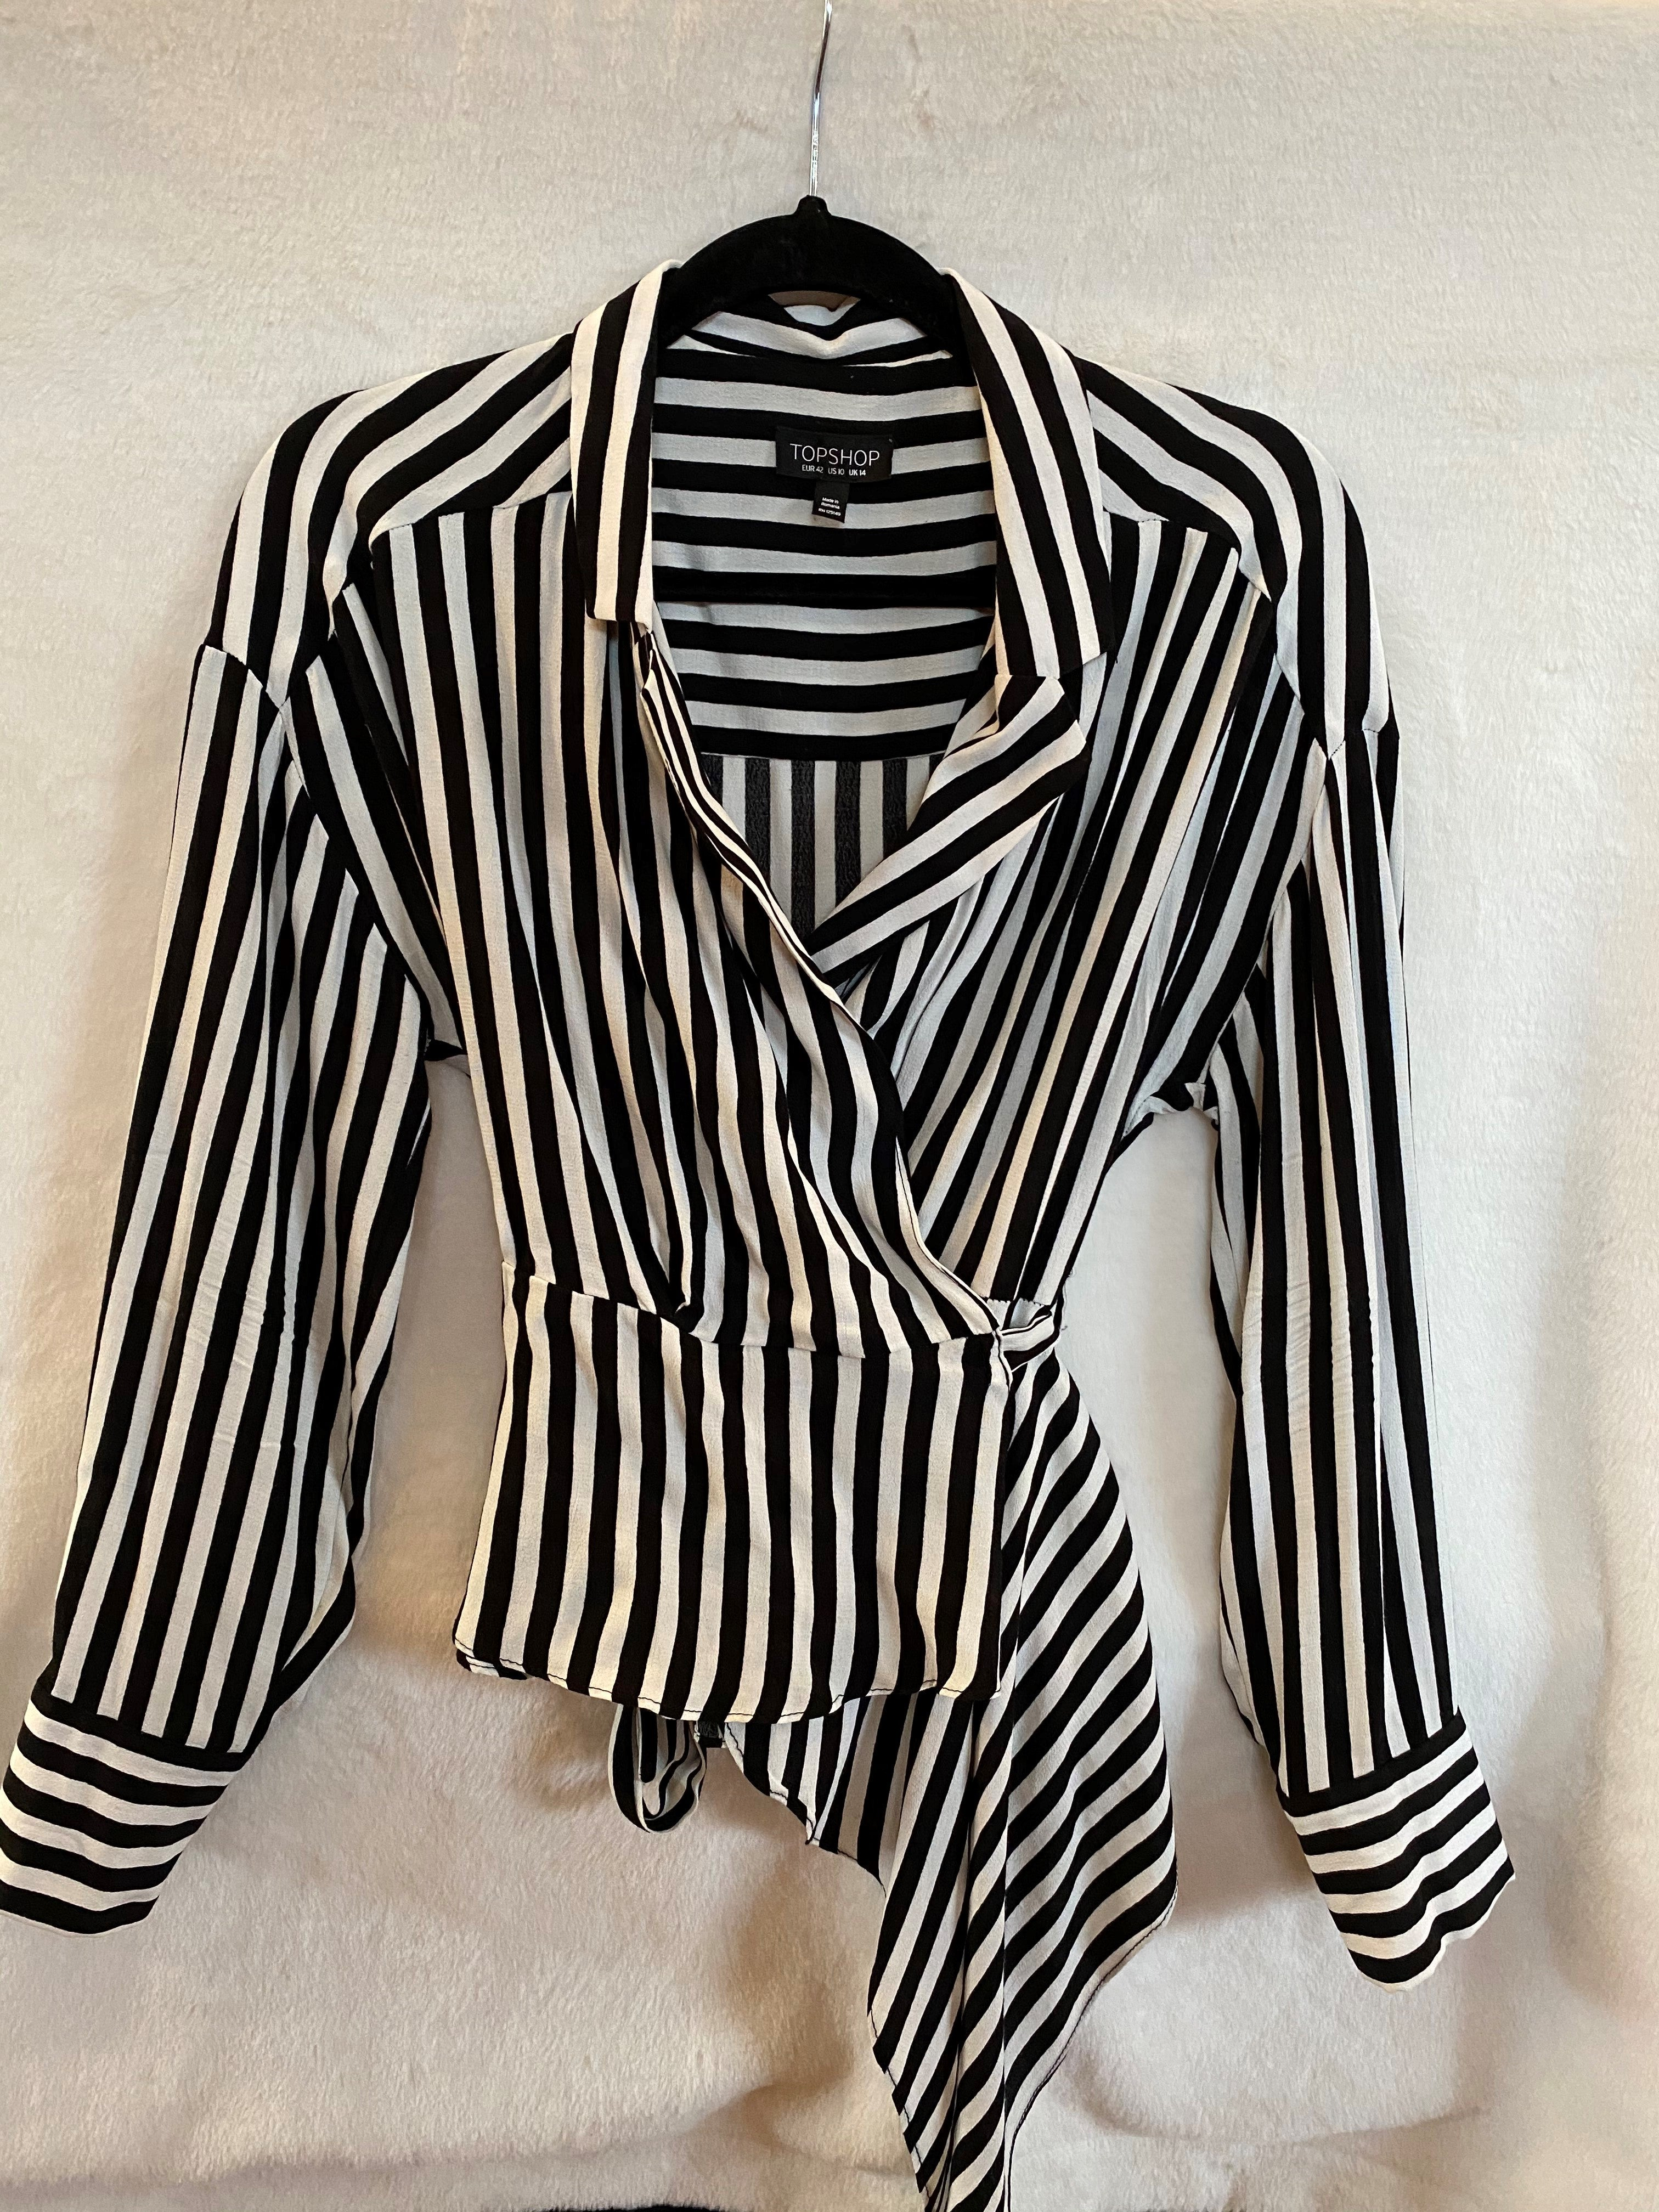 TOPSHOP wrap-around blouse - Size 10